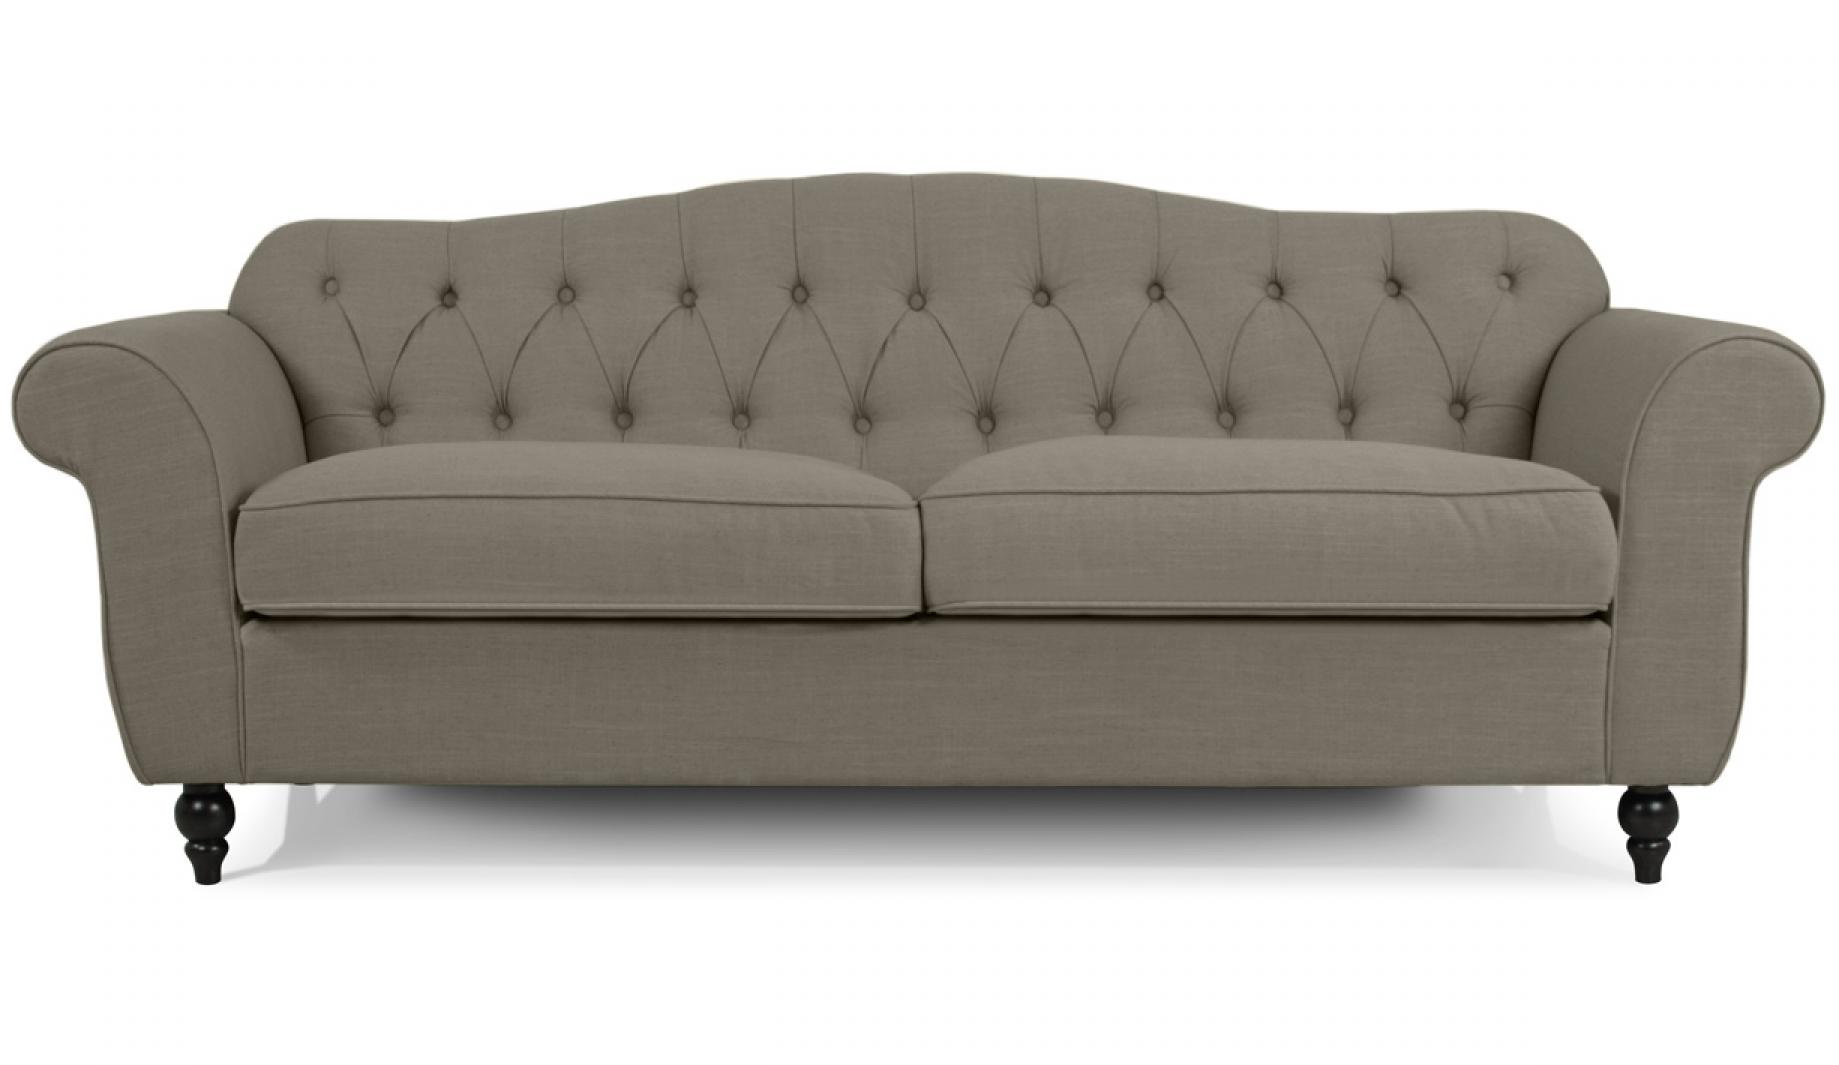 Canape chesterfield tissu for Canape chesterfield